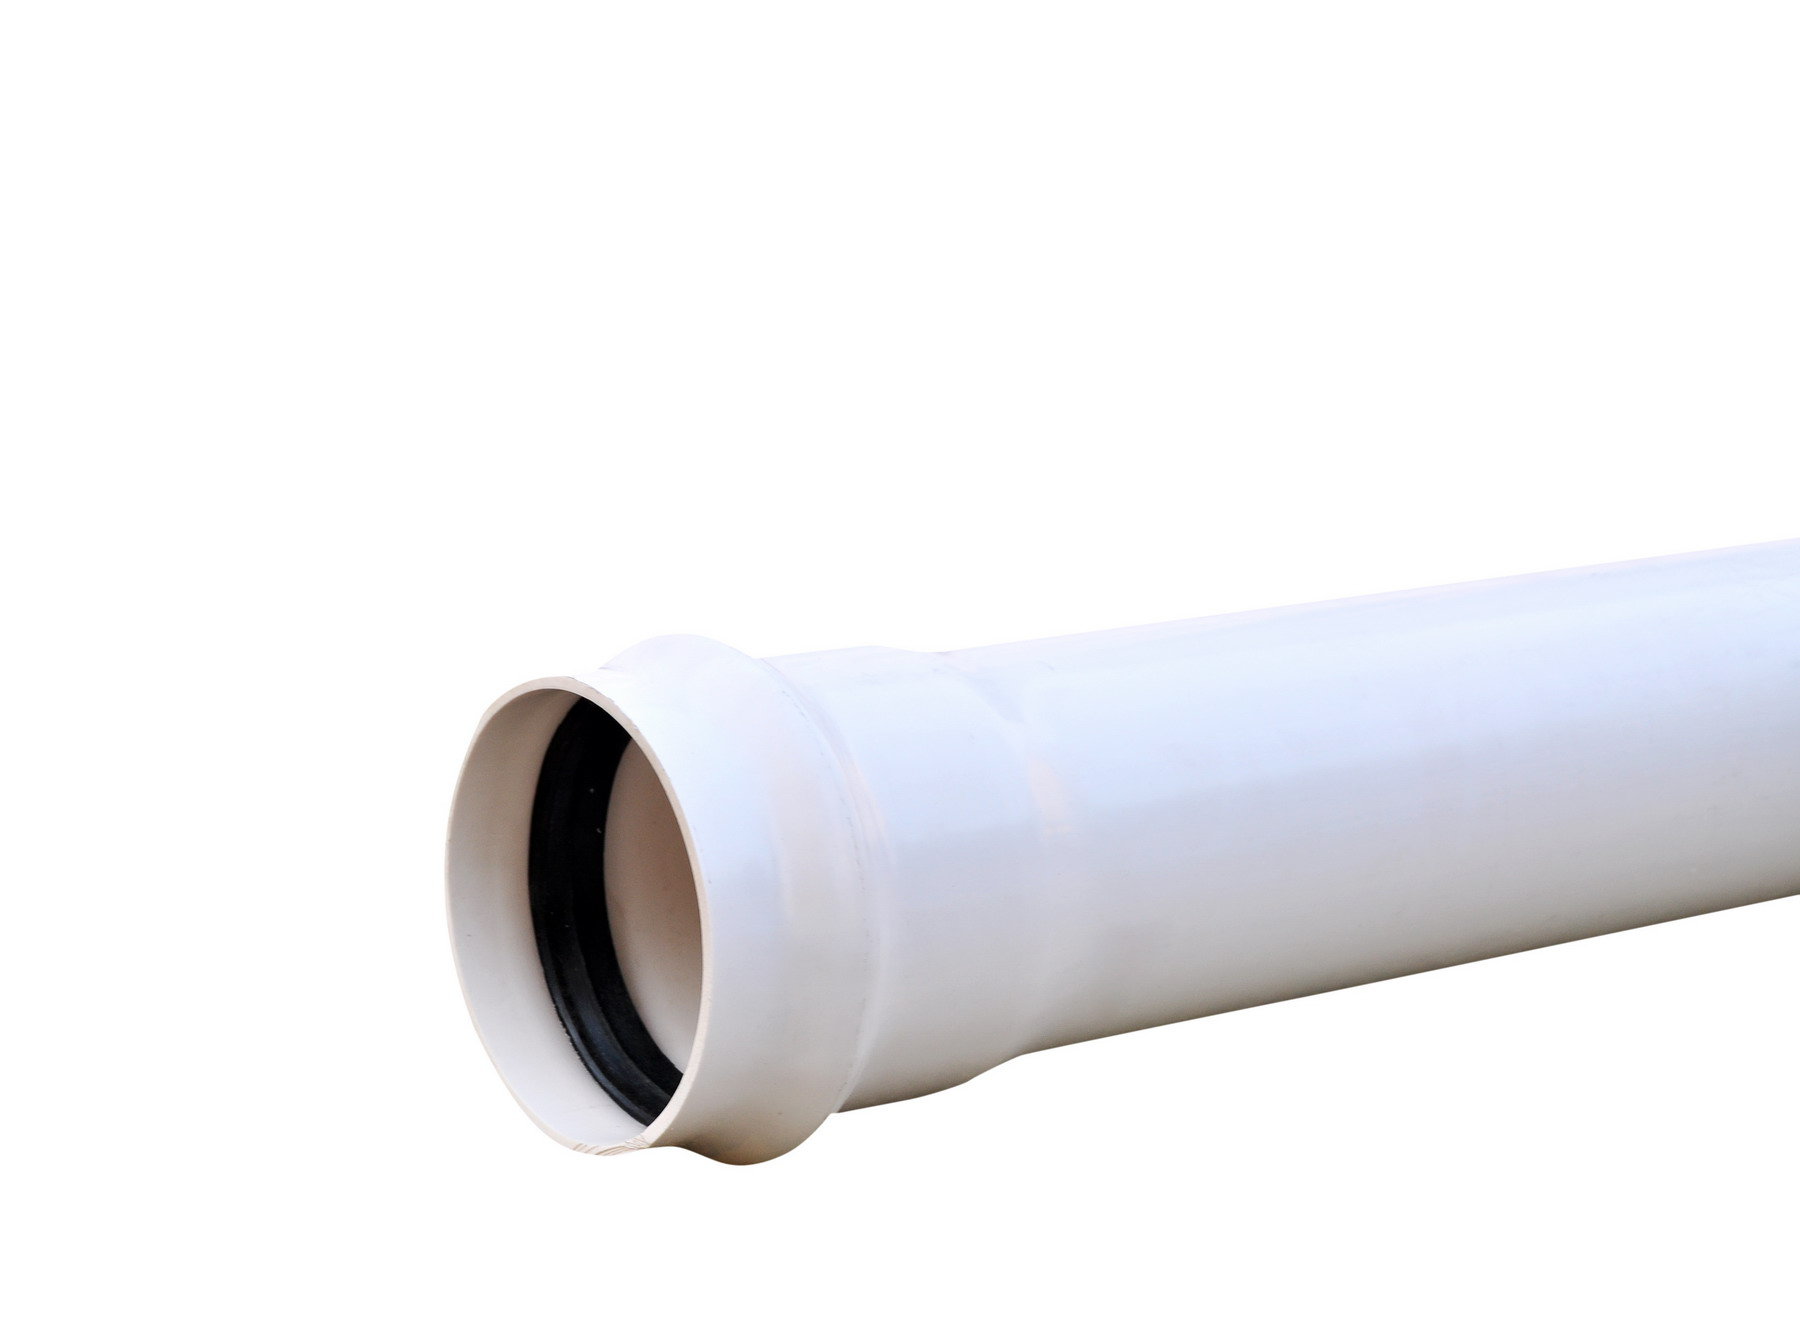 Gasketed Pipe - Pipe - Products